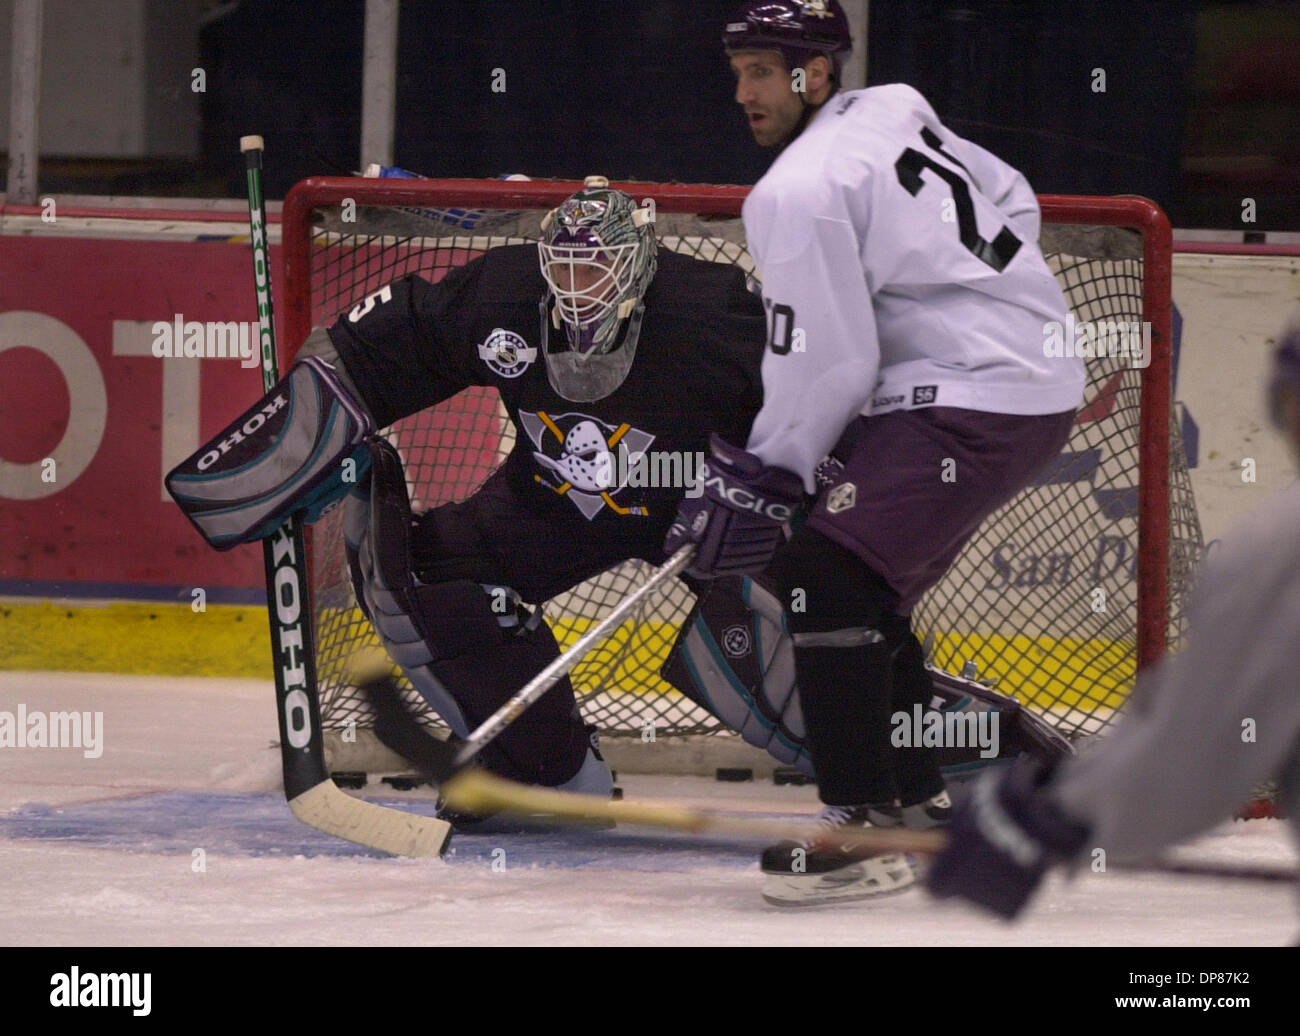 (Published 09/25/2003, D-9; UTS1762241) NC DUCKS 211470 x001 ........... September 24, 2003......... Mighty Ducks goalie Jean-Sebastien Giguere takes his work out as team players work on shooting drills during a recent training camp at San Diego sports Arena.  UNION-TRIBUNE NELVIN CEPEDA - Stock Image